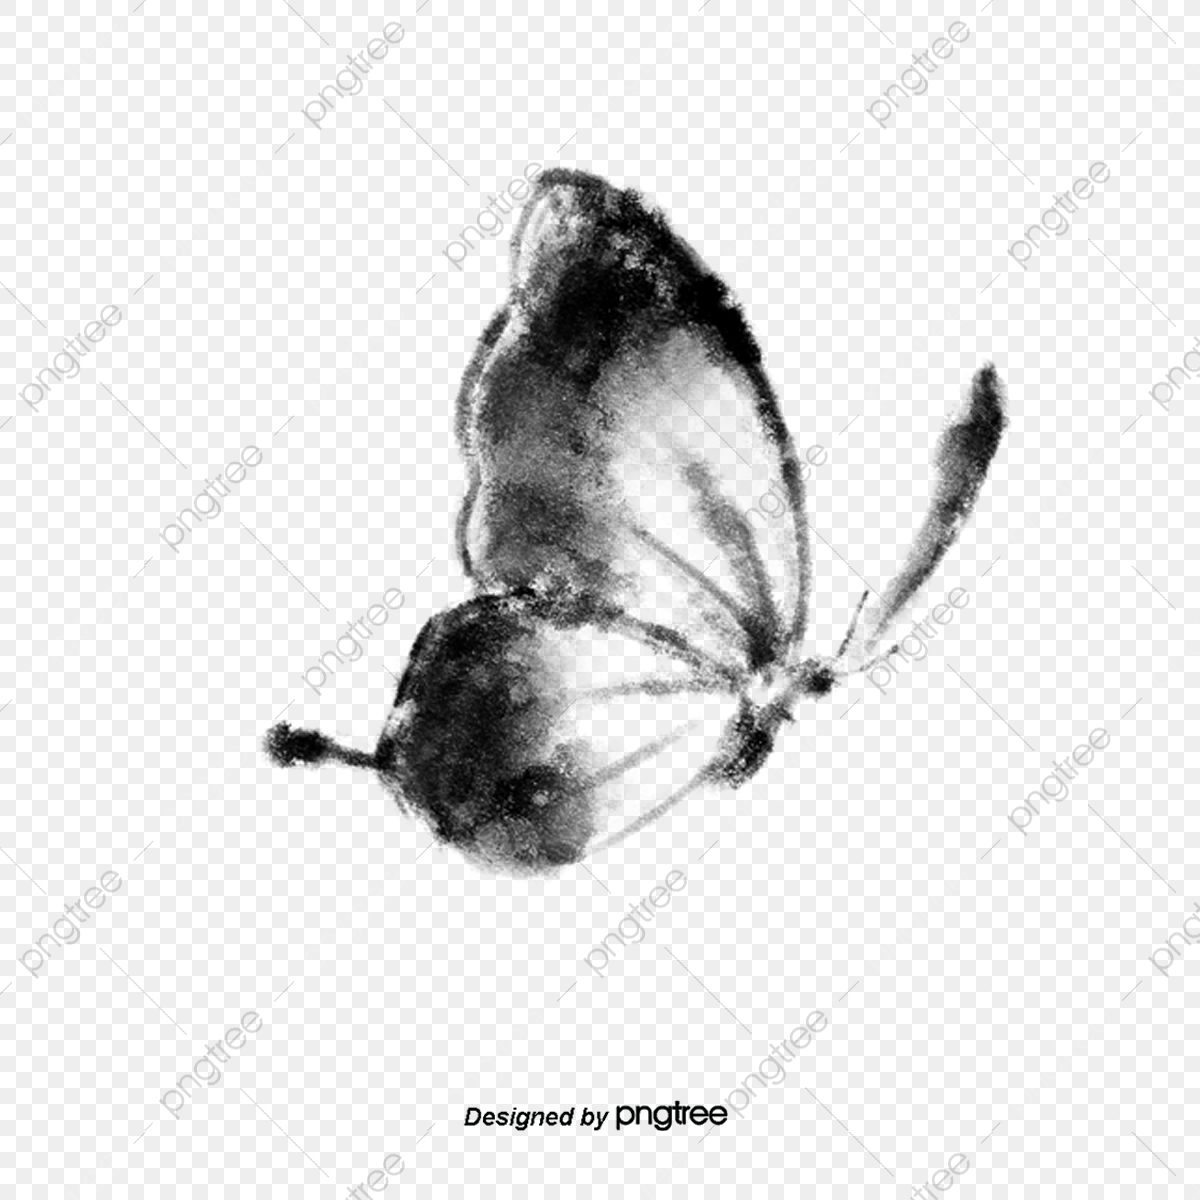 pngtree side flying black and white butterfly elements in ink png image